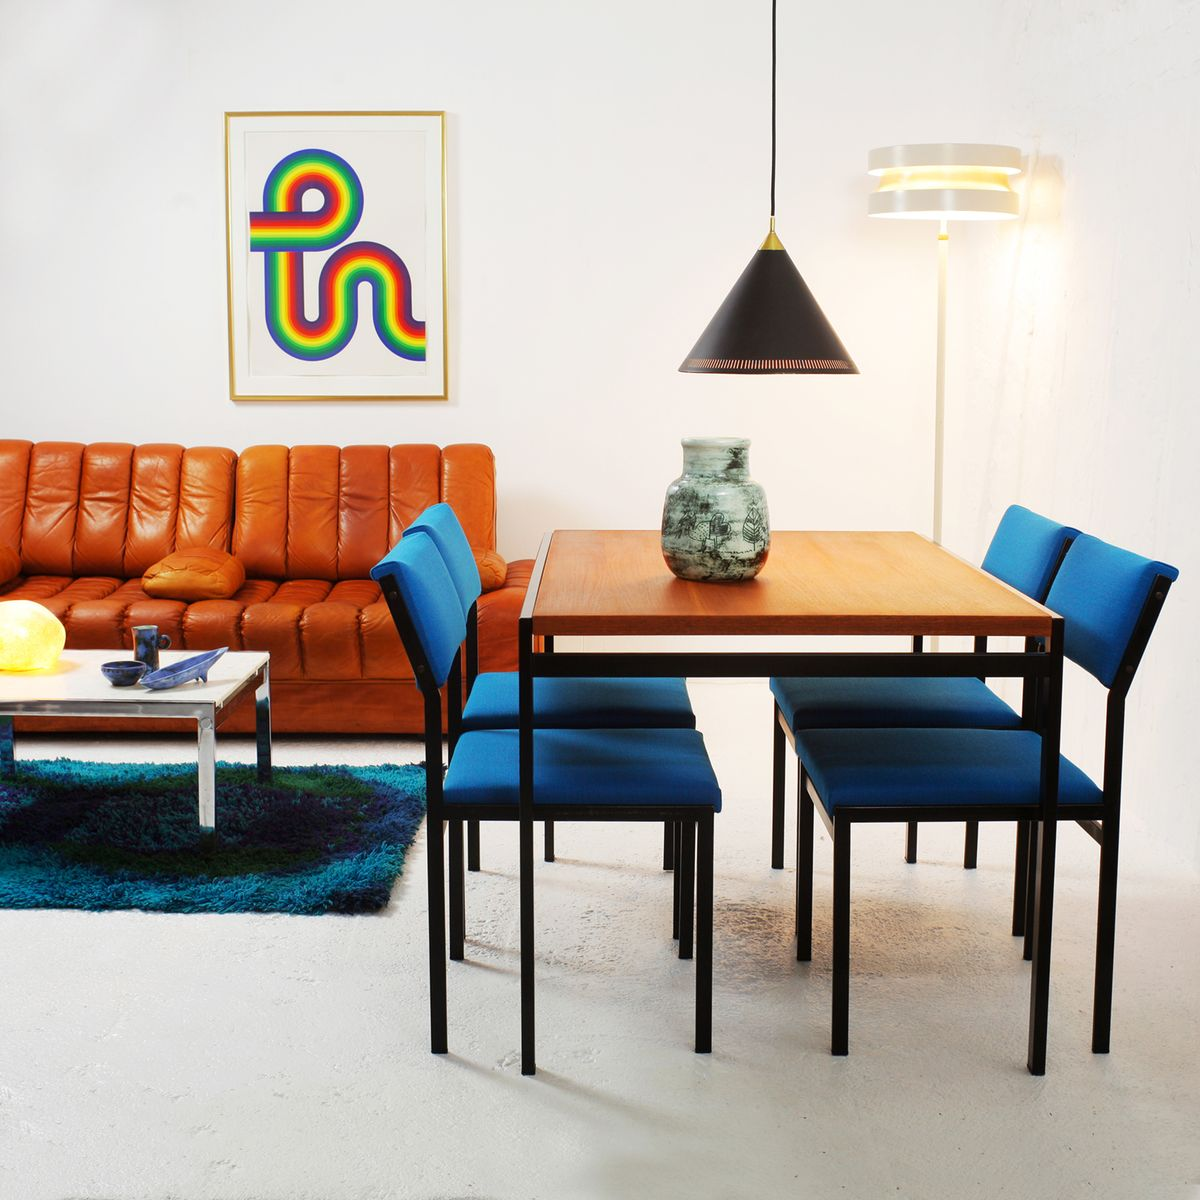 Dining Chairs In Living Room. Japanese Series Dining Chairs by Cees Braakman for Pastoe  1960s Set of 4